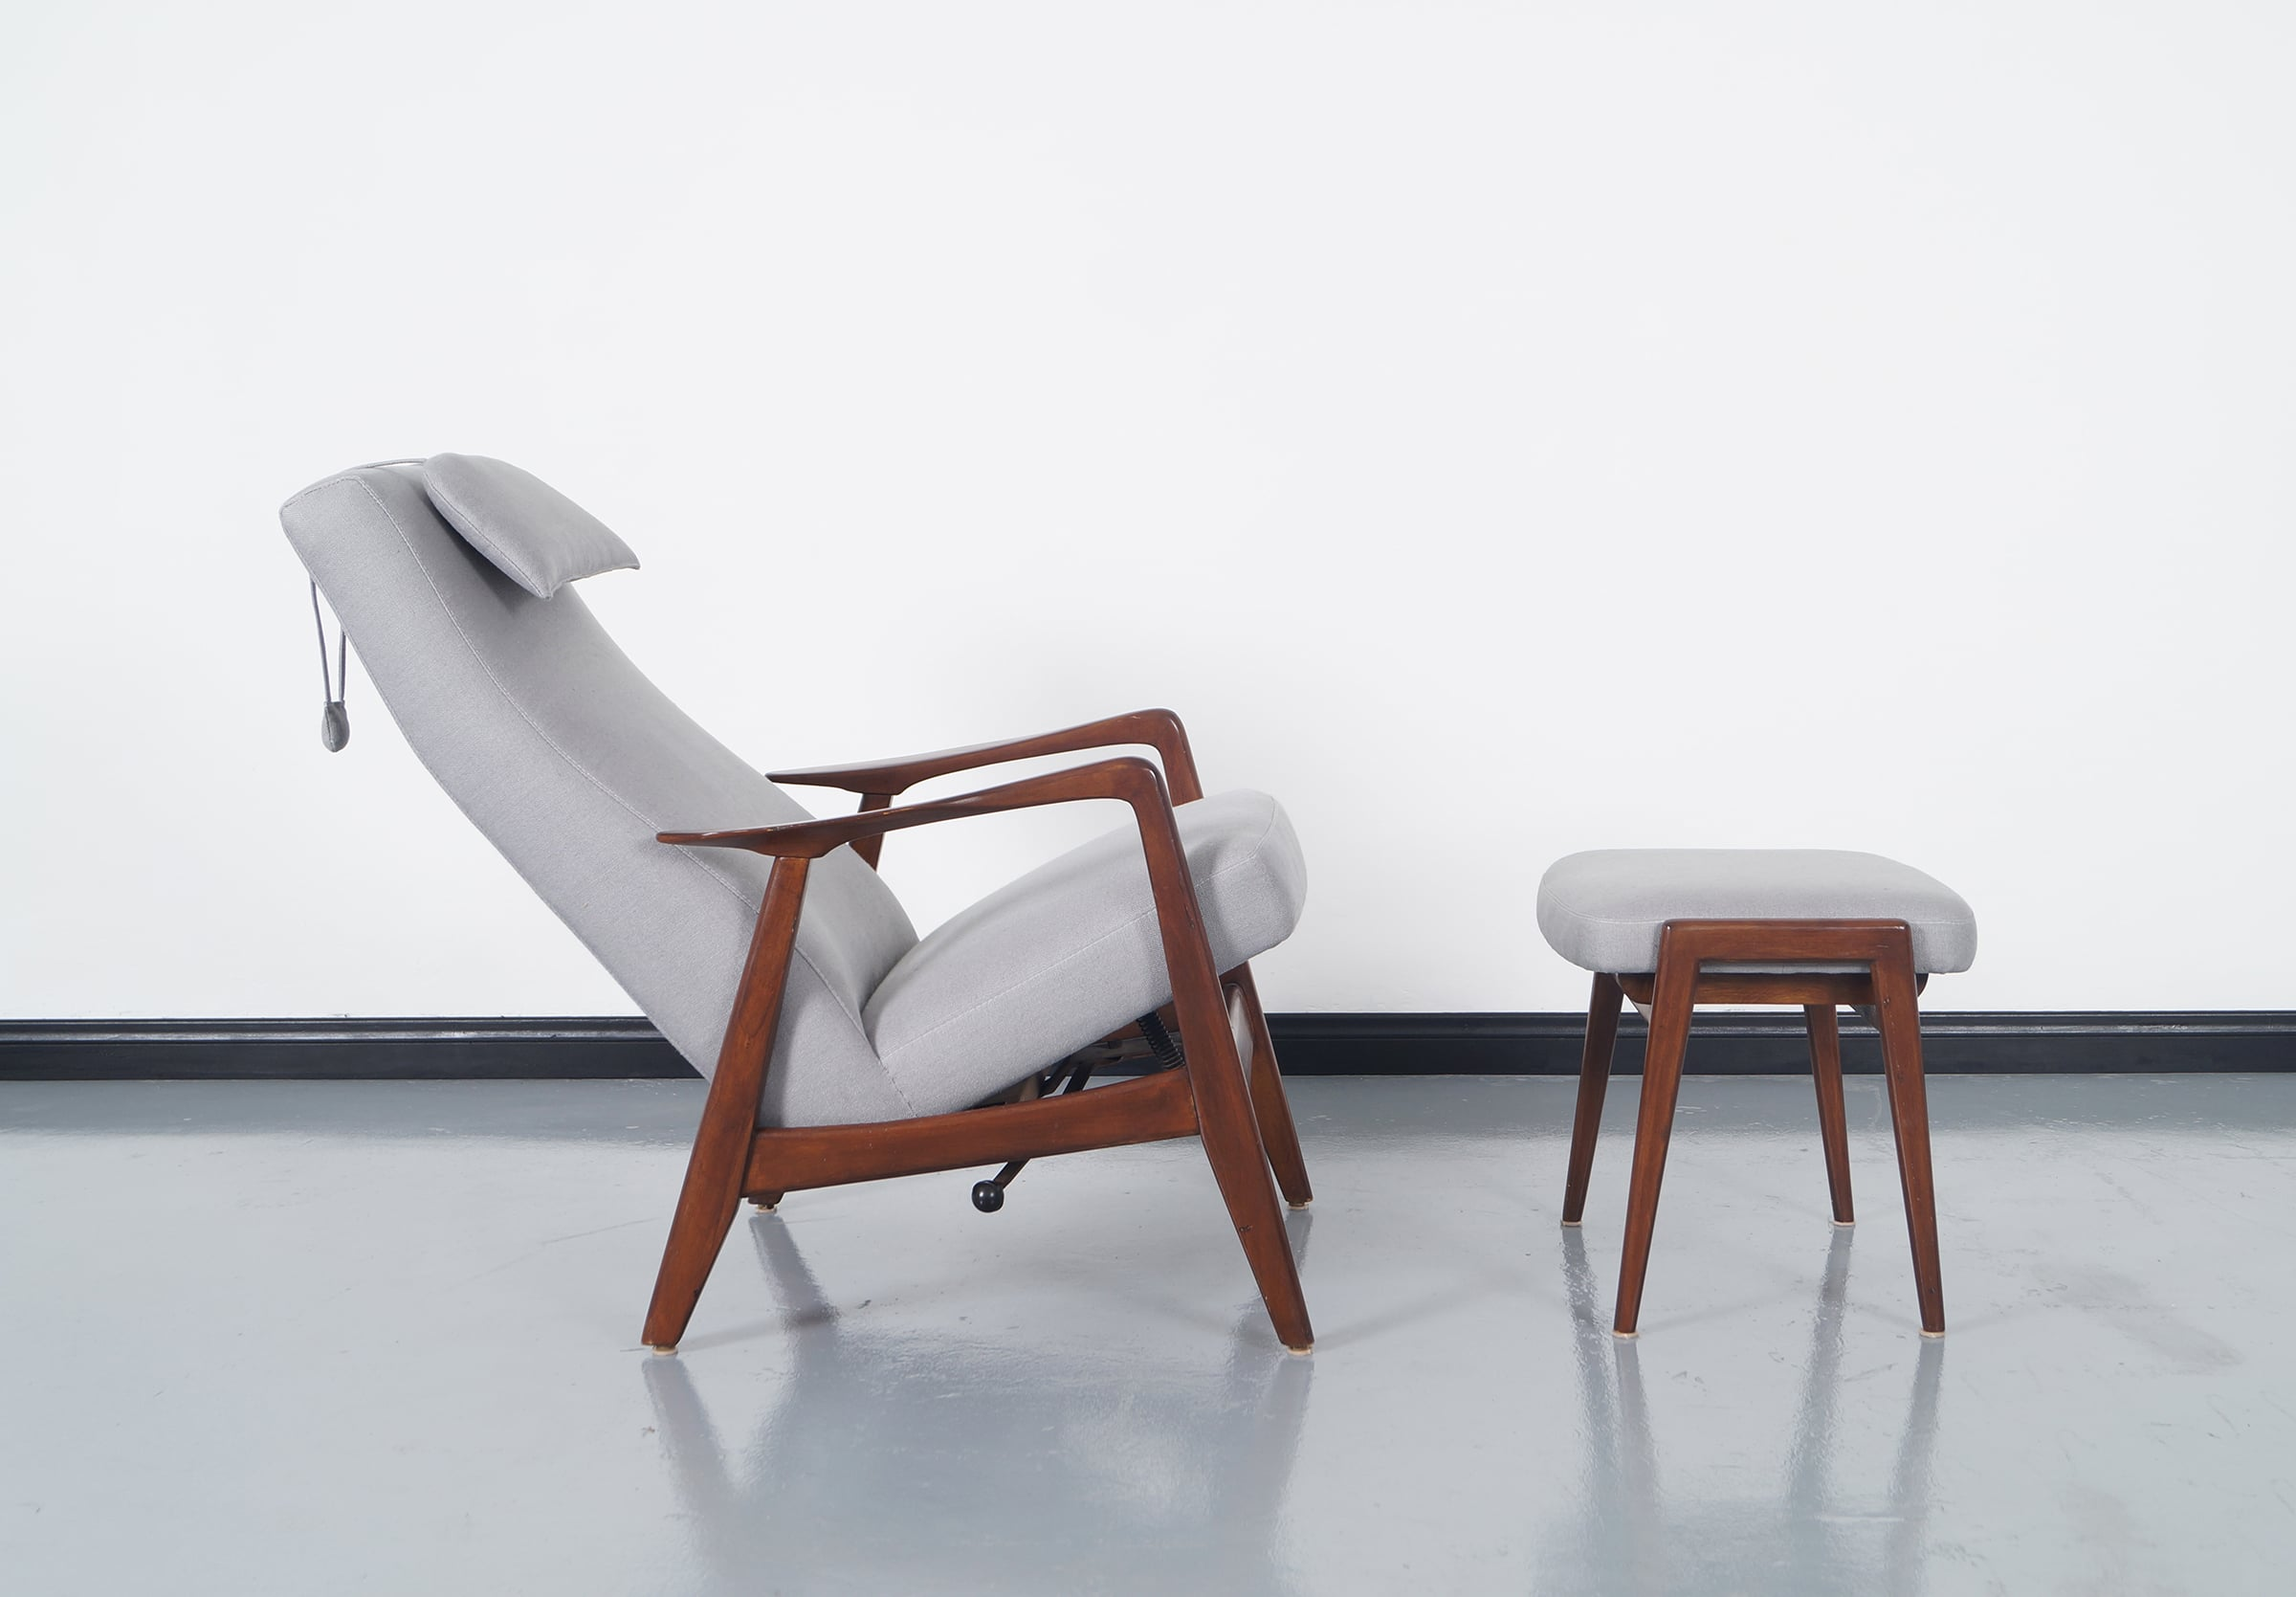 Vintage Reclining Lounge Chair & Ottoman by Folke Ohlsson for Dux